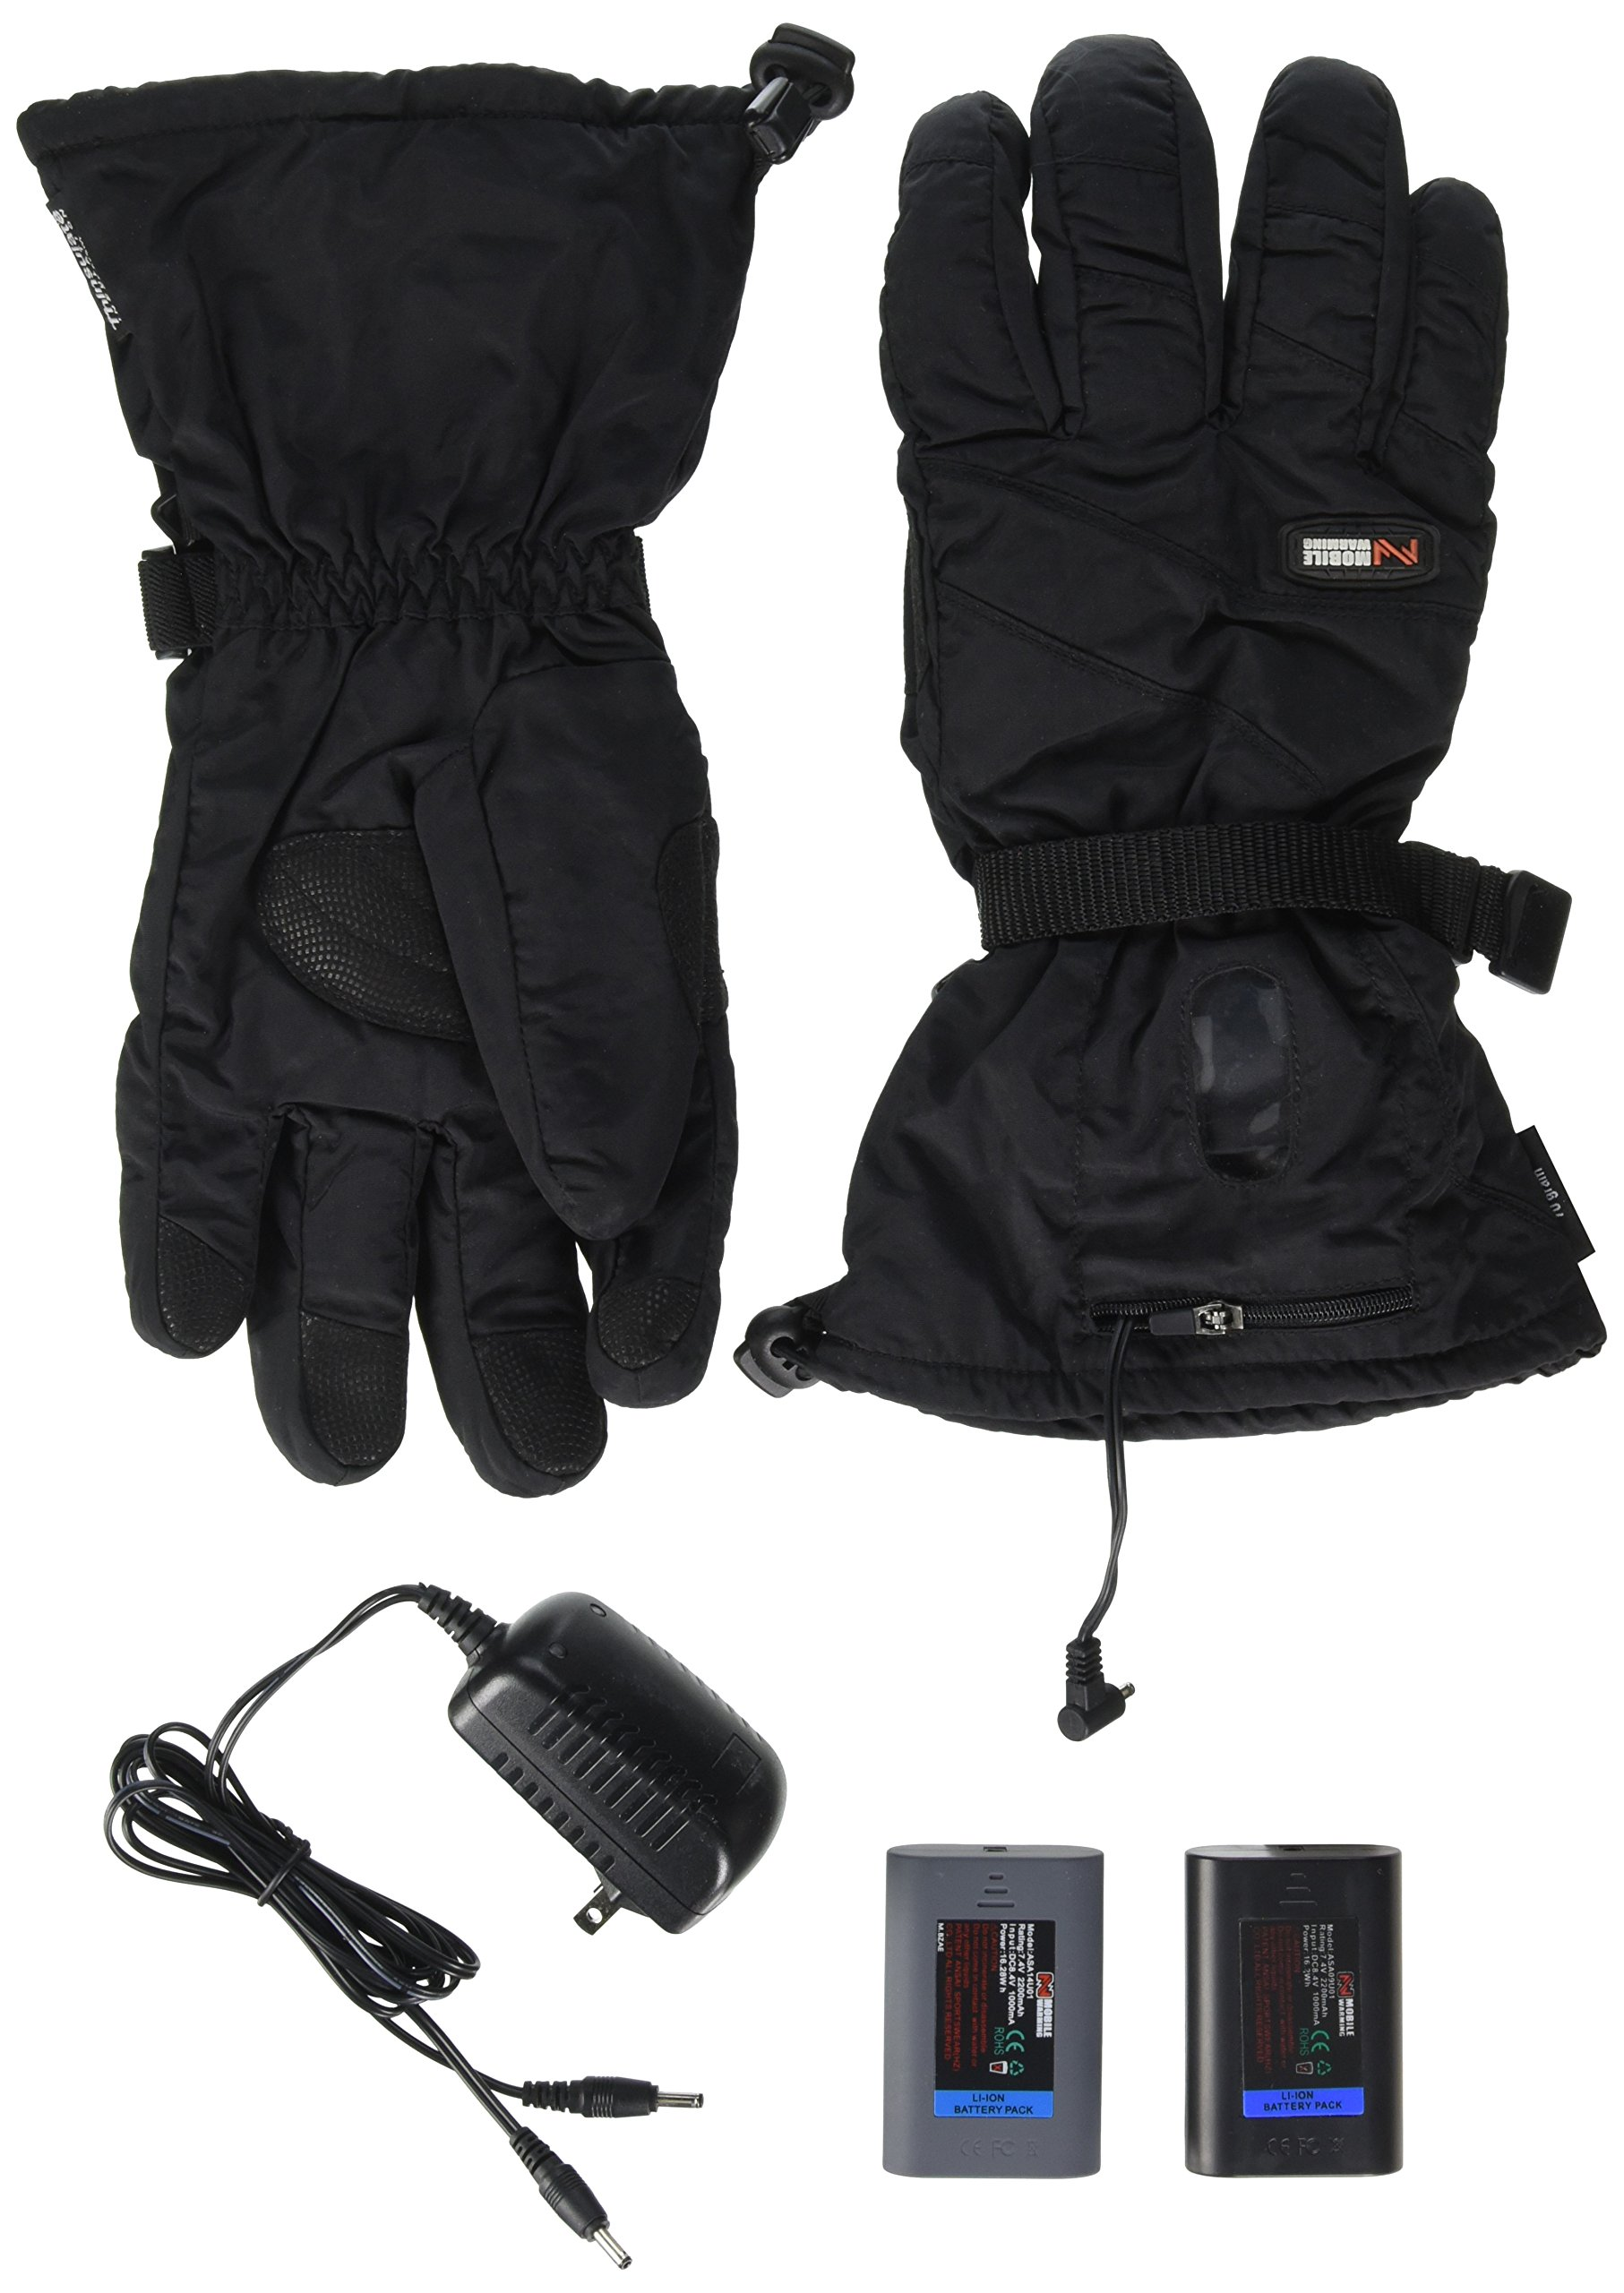 Mobile Warming TEXTILE Glove Heated Textile Motorcycle Glove (Black, Large)